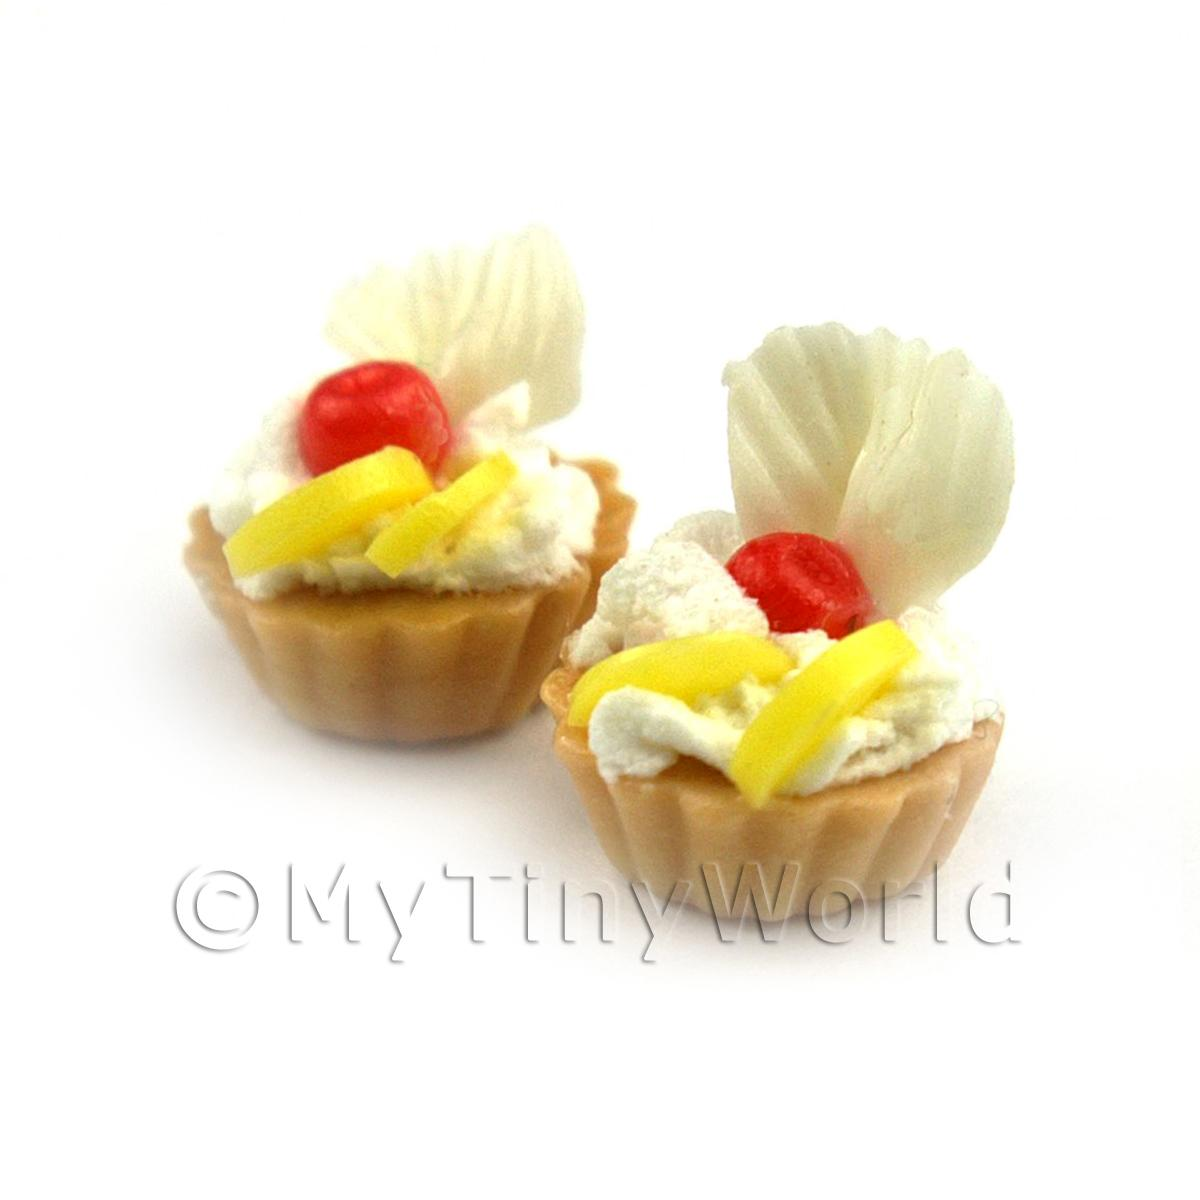 Dolls House Miniature Loose Handmade Cherry and Lemon Tart